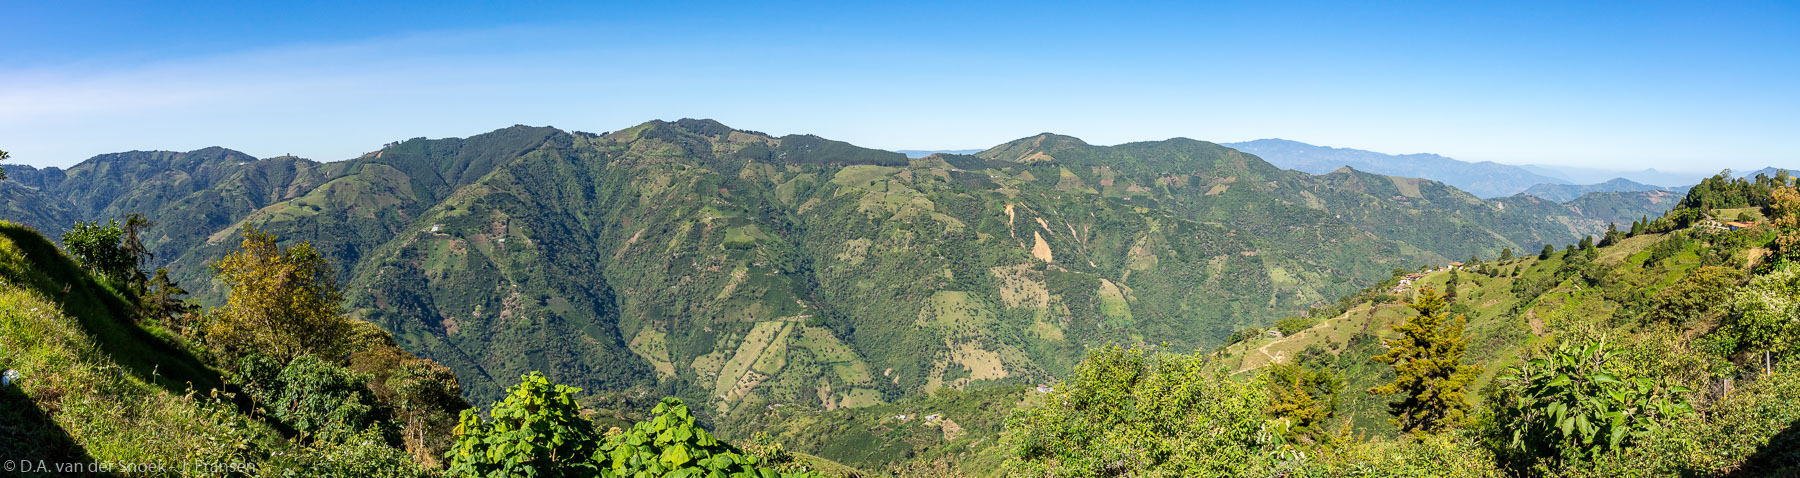 Colombia-1131-Pano.jpg